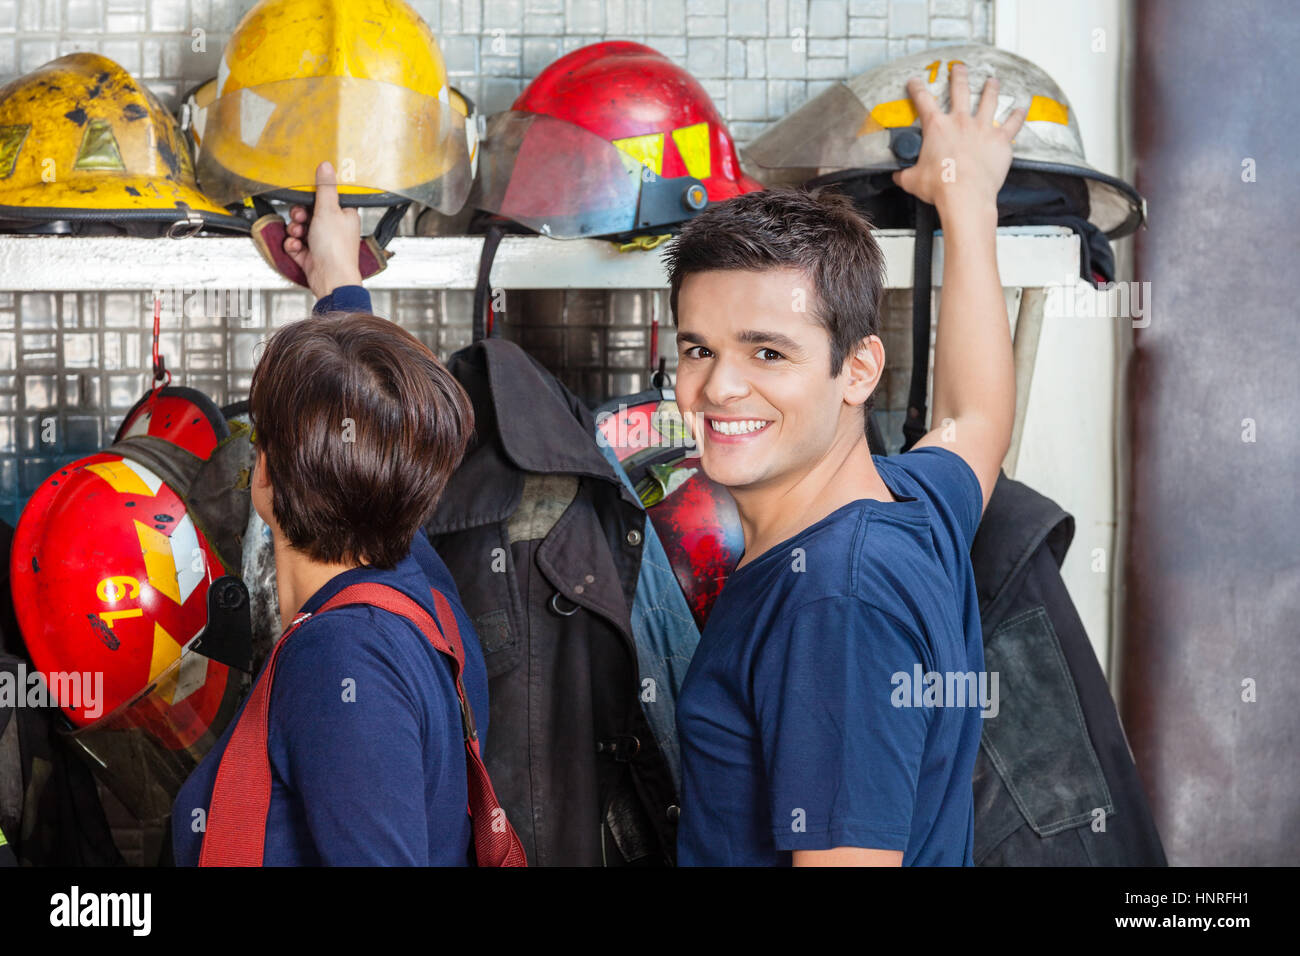 Happy Firefighter With Colleague Removing Helmet - Stock Image